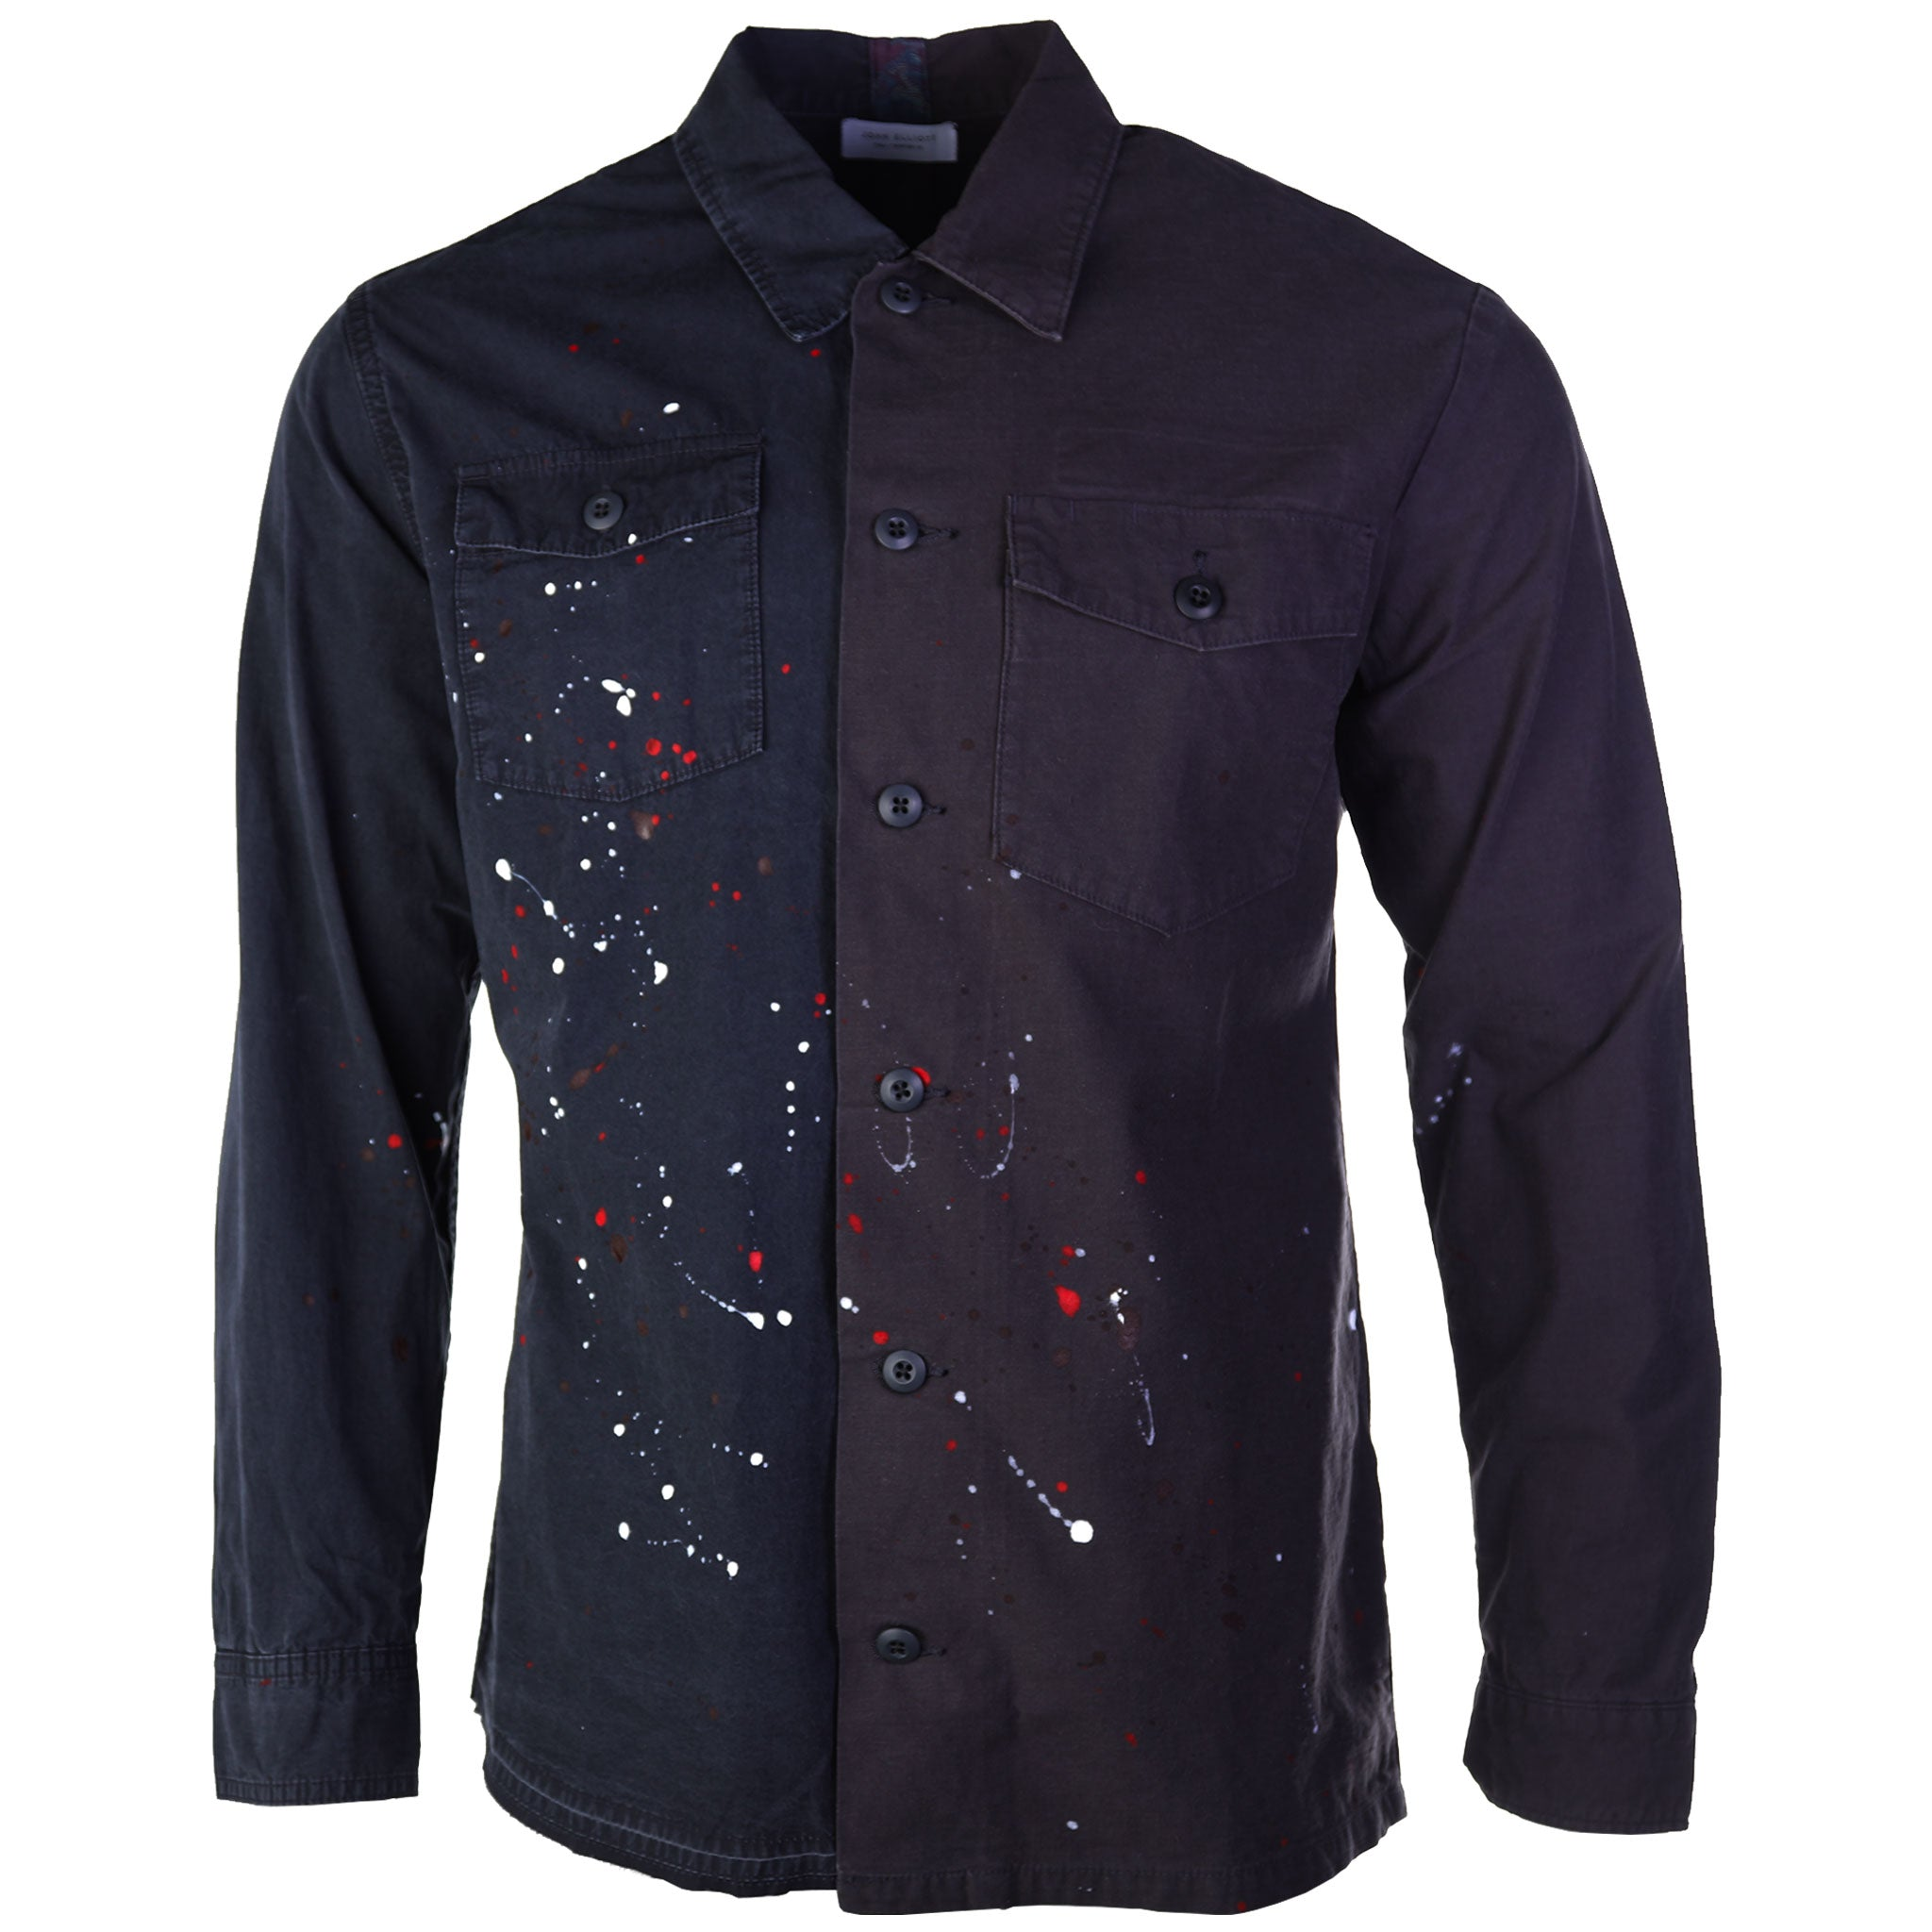 John Elliott Distorted Military Button Down Shirt Delirum Black Paint Splatter 2018 AW18 fall winter